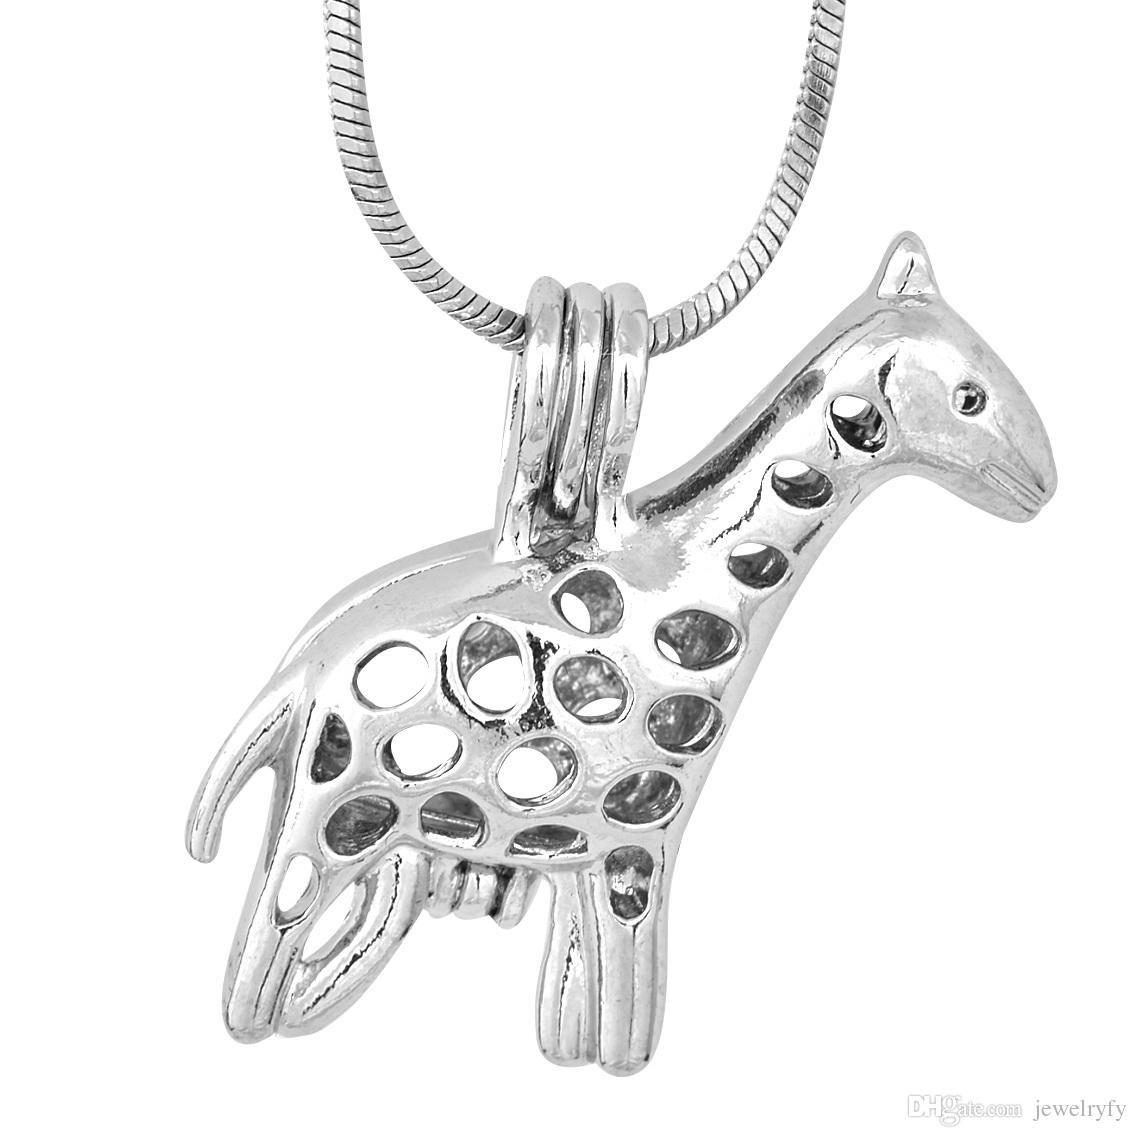 sterli giraffe product exclusivity pendant by mini sterling silver